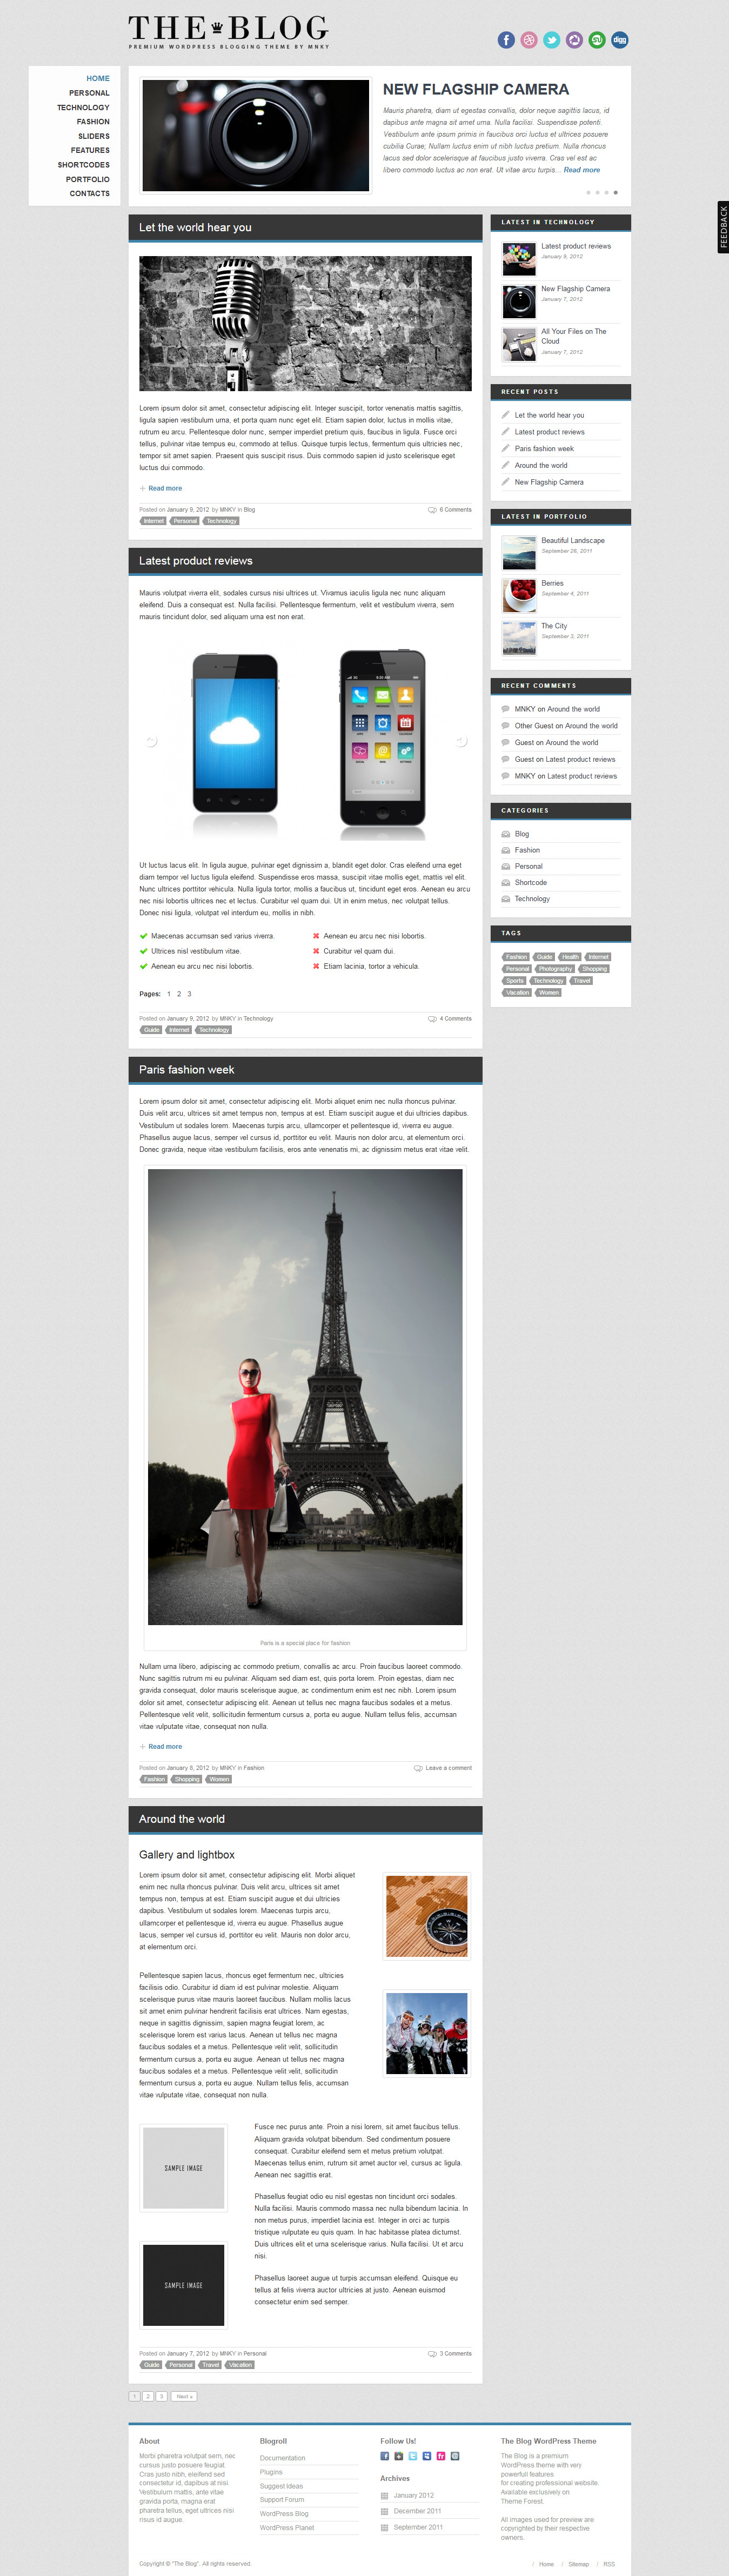 The Blog - Best Blog WordPress Theme